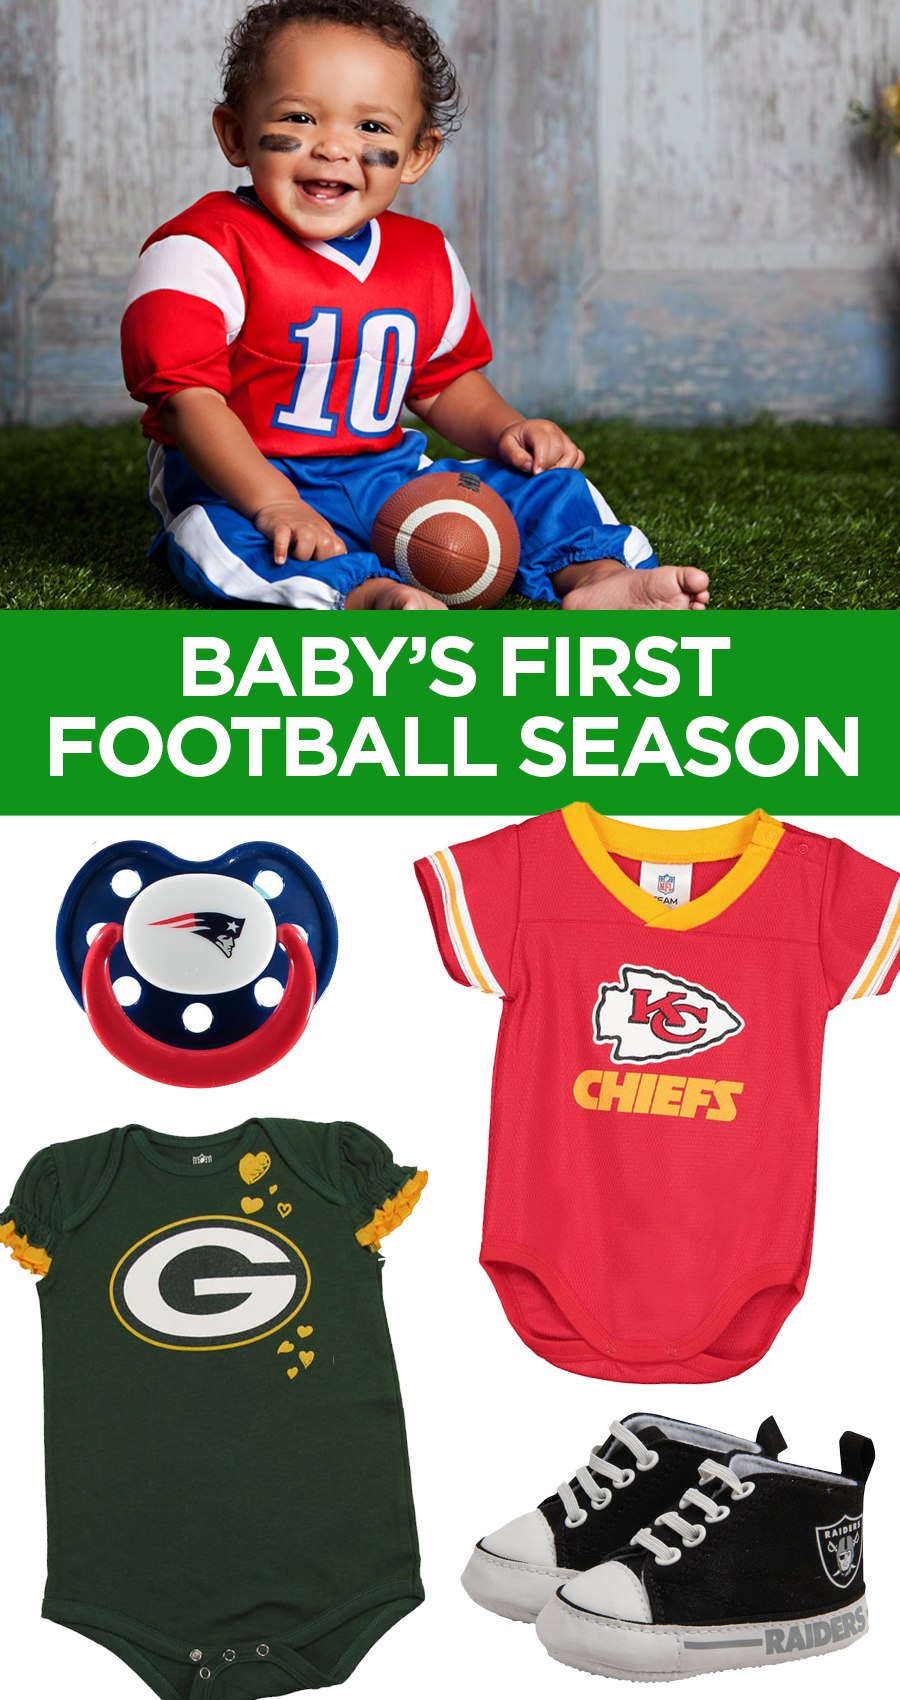 039bba402af3b Find the sweetest gear for your smallest fans! Rep your favorite team with NFL  Shop and click to save with our exclusive coupons!